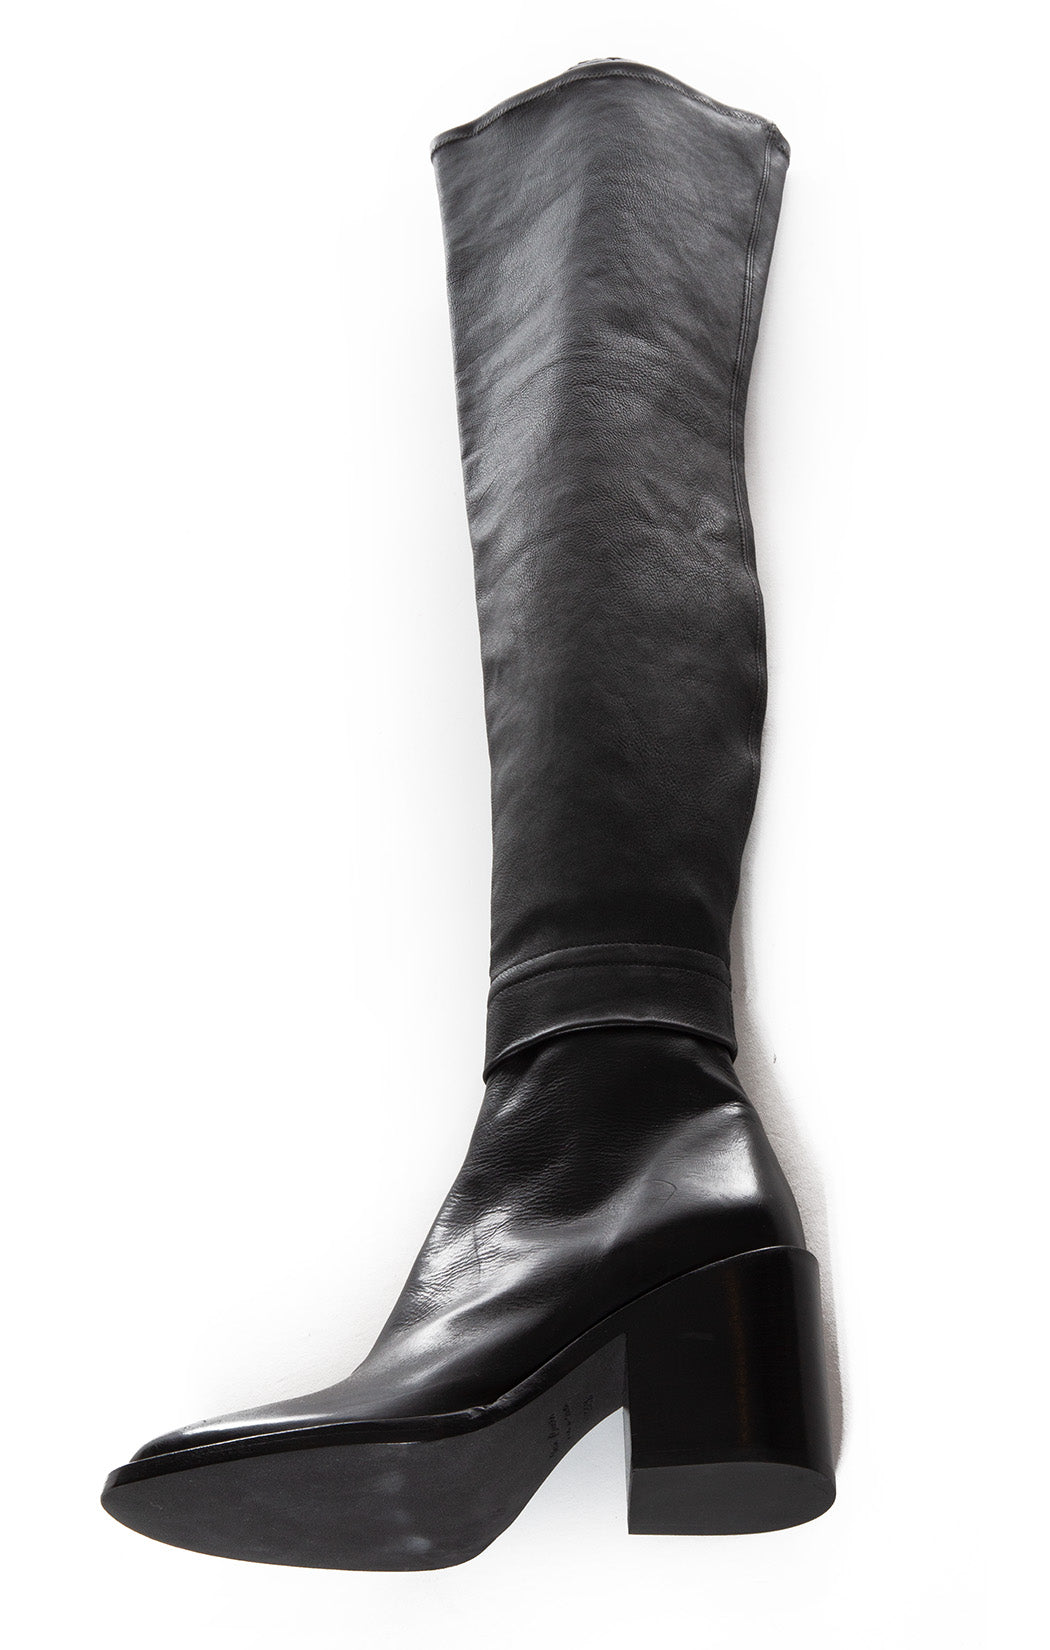 Second side view of ANN DEMEULEMEESTER Over the knee boots